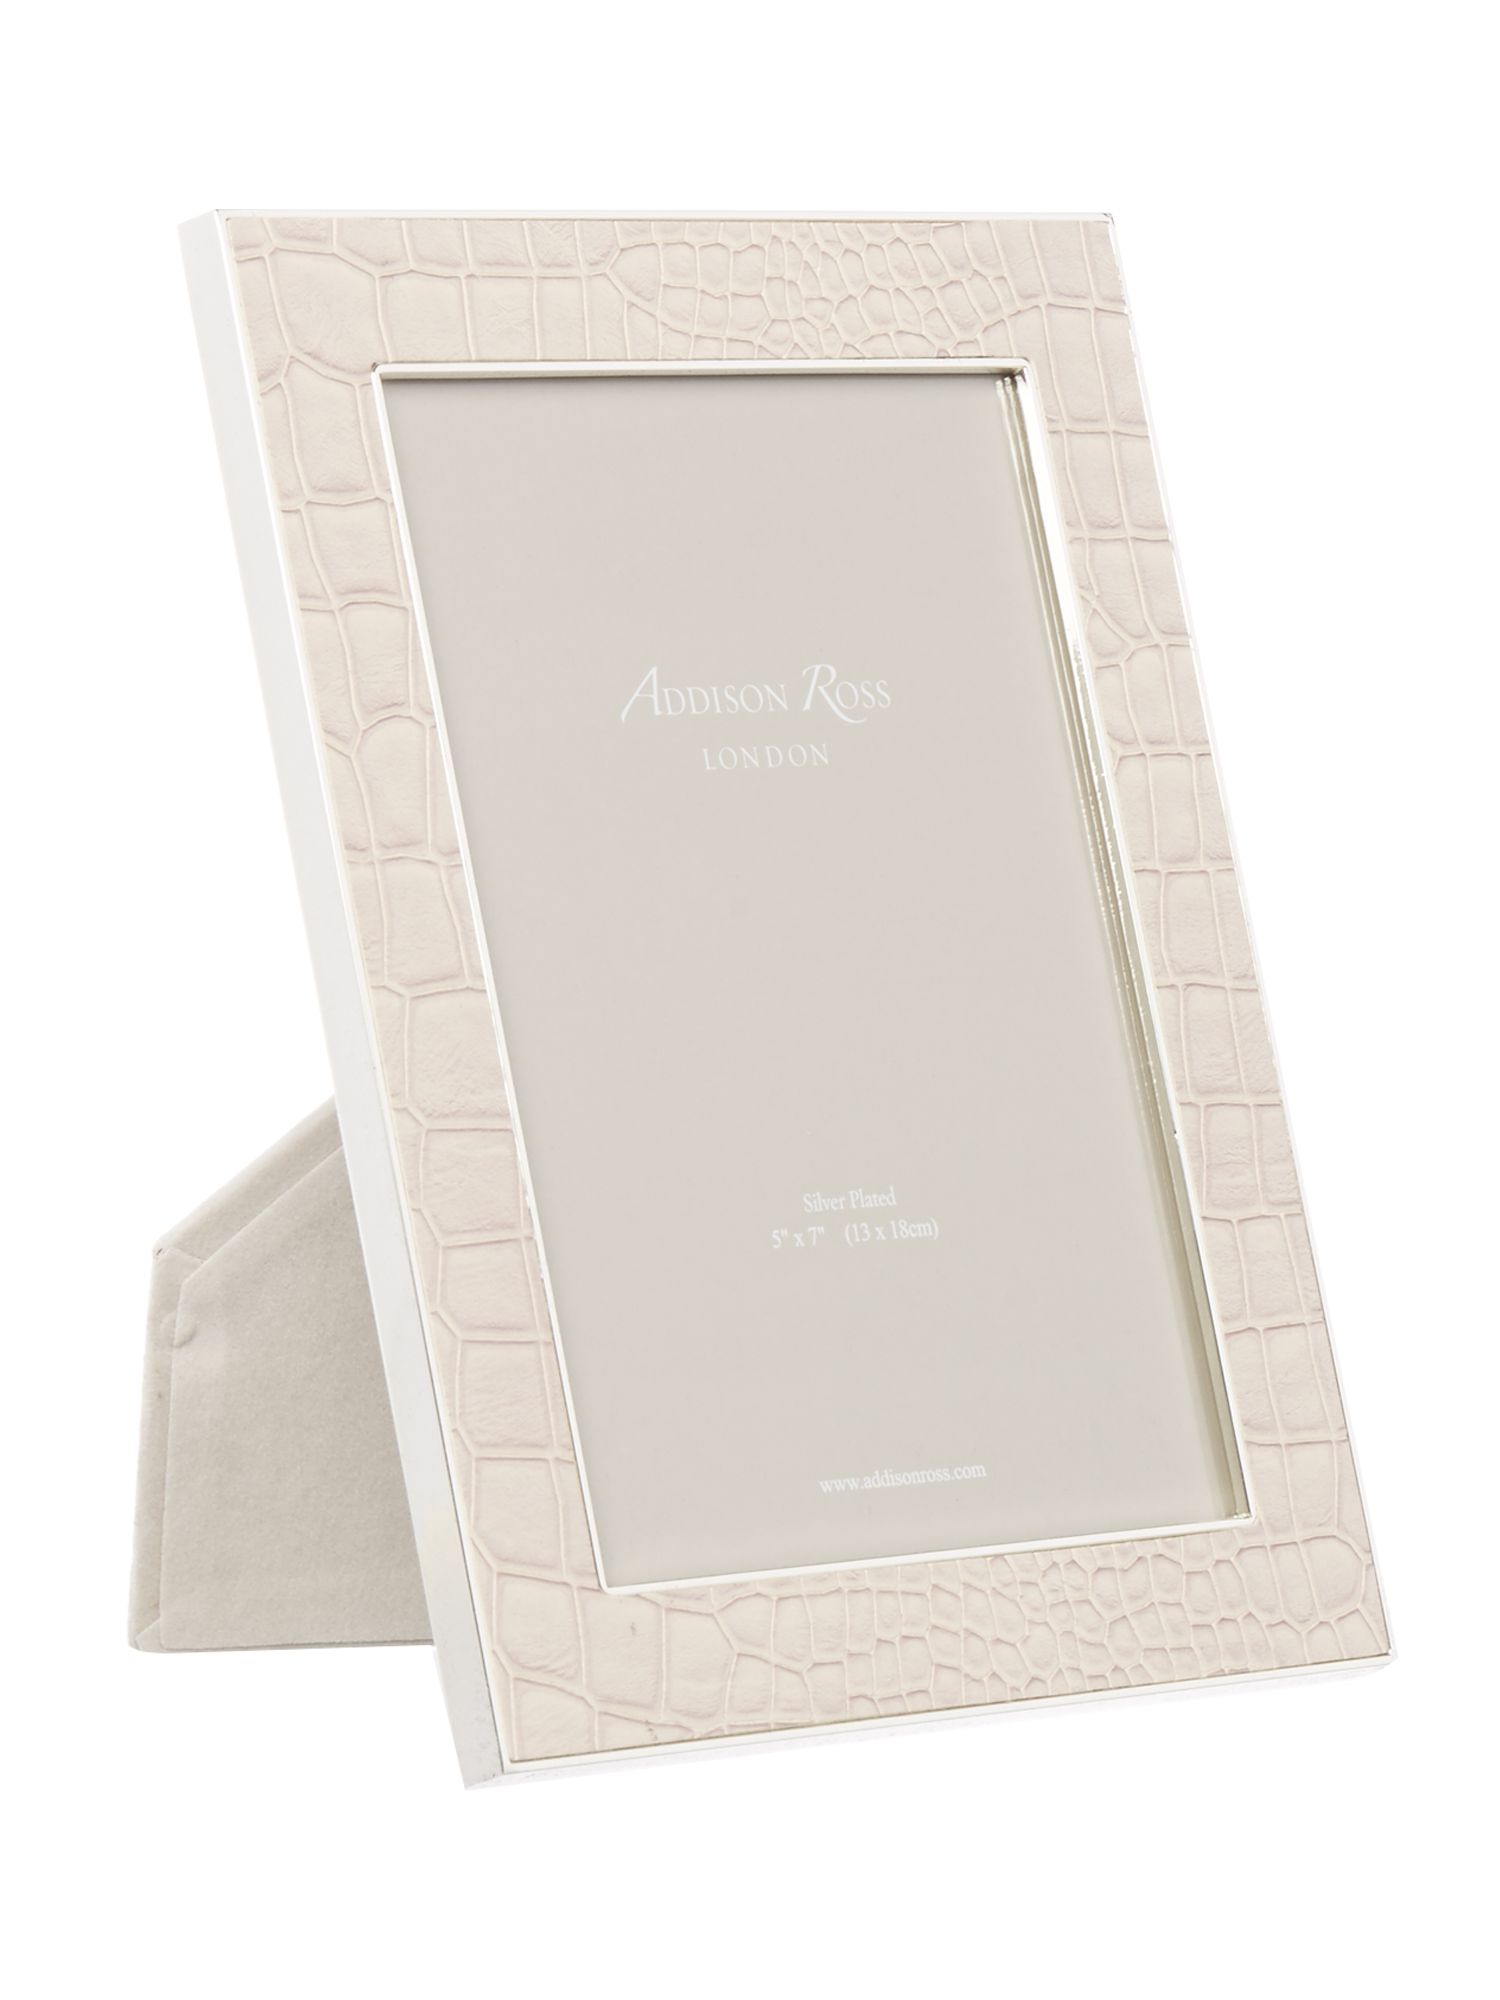 Image of Addison Ross 5x7 faux croc cream frame